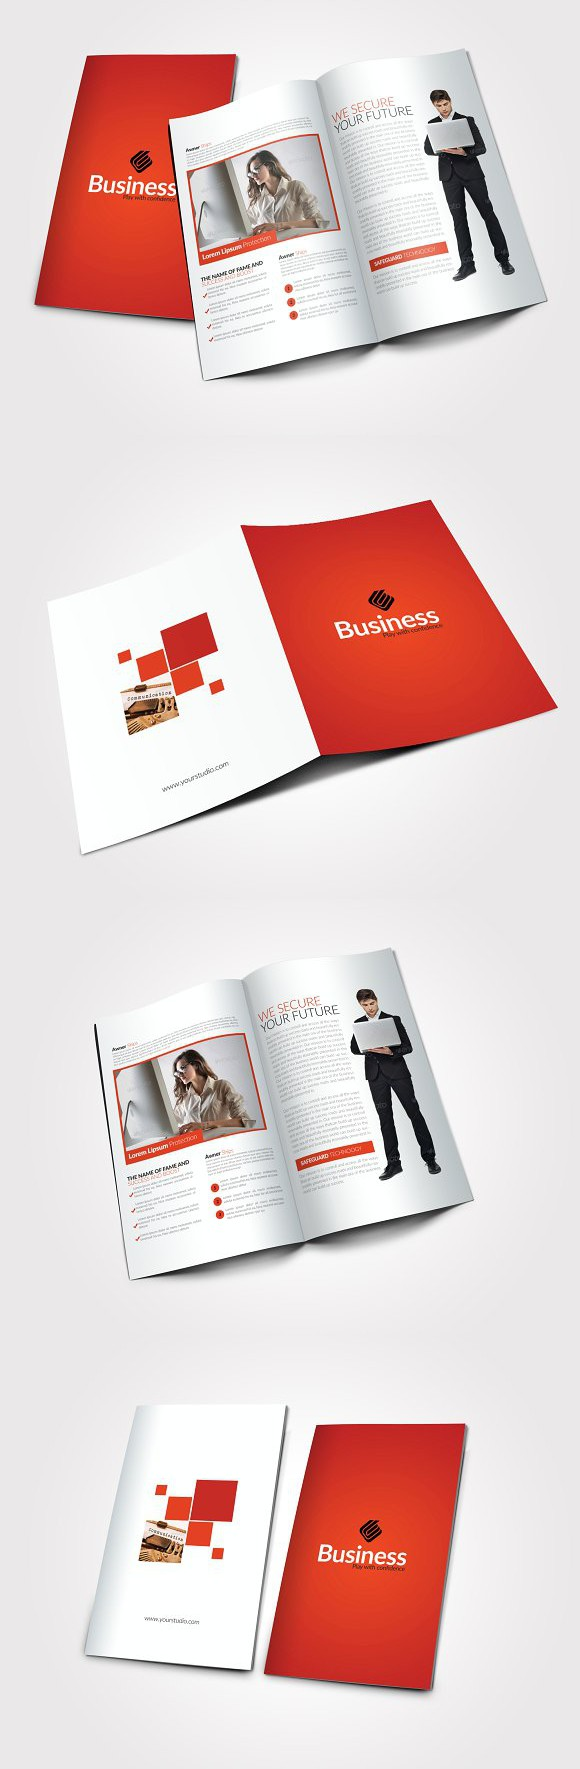 4 pages business bi fold brochure creative business card templates 4 pages business bi fold brochure creative business card templates fbccfo Gallery